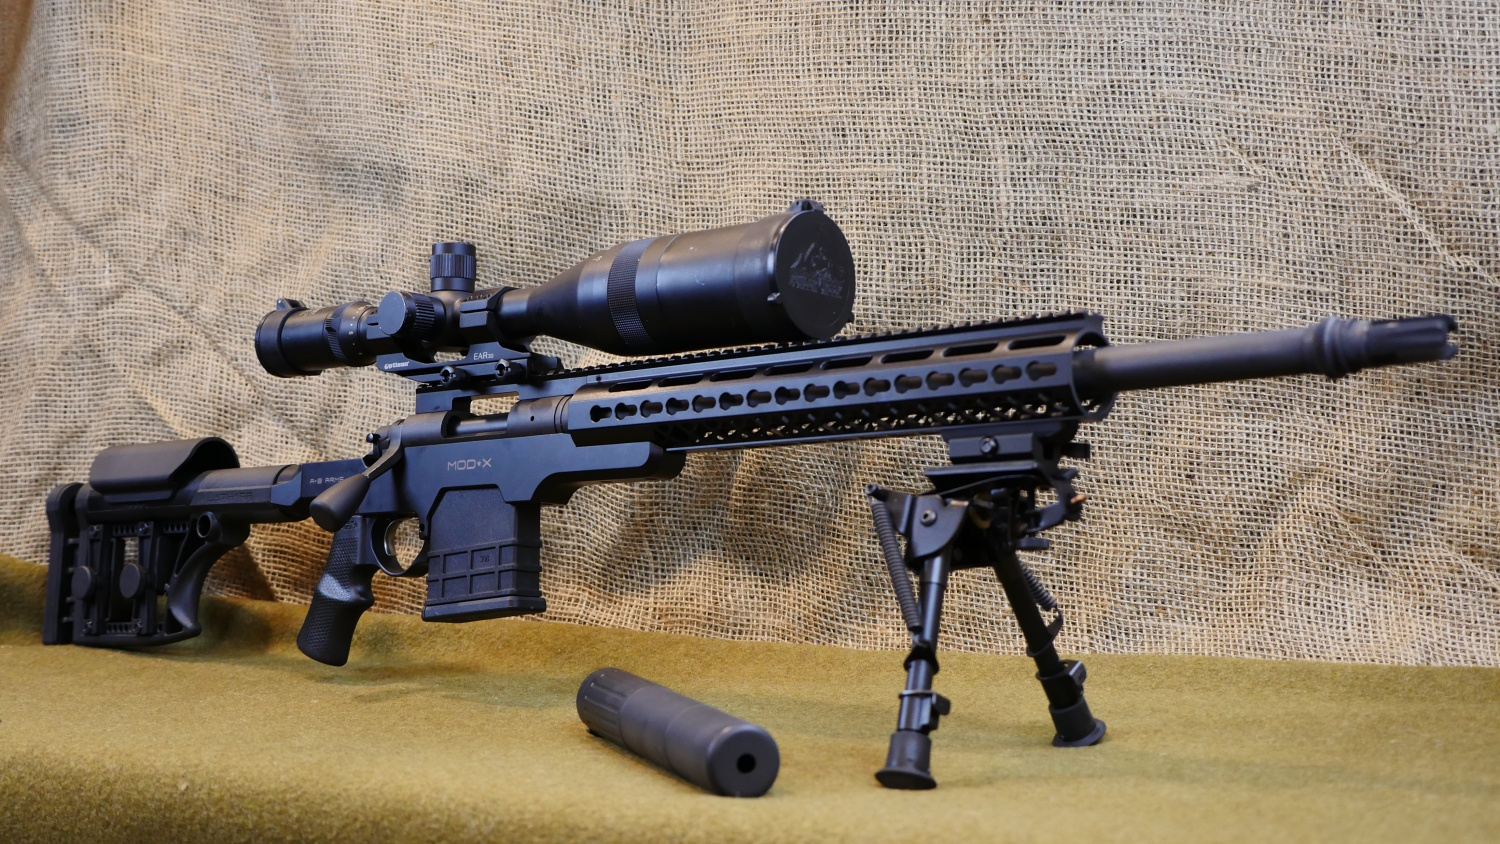 AR15.Com - Your Firearm Resource. (AR-15, AR-10, M4, M16 ...